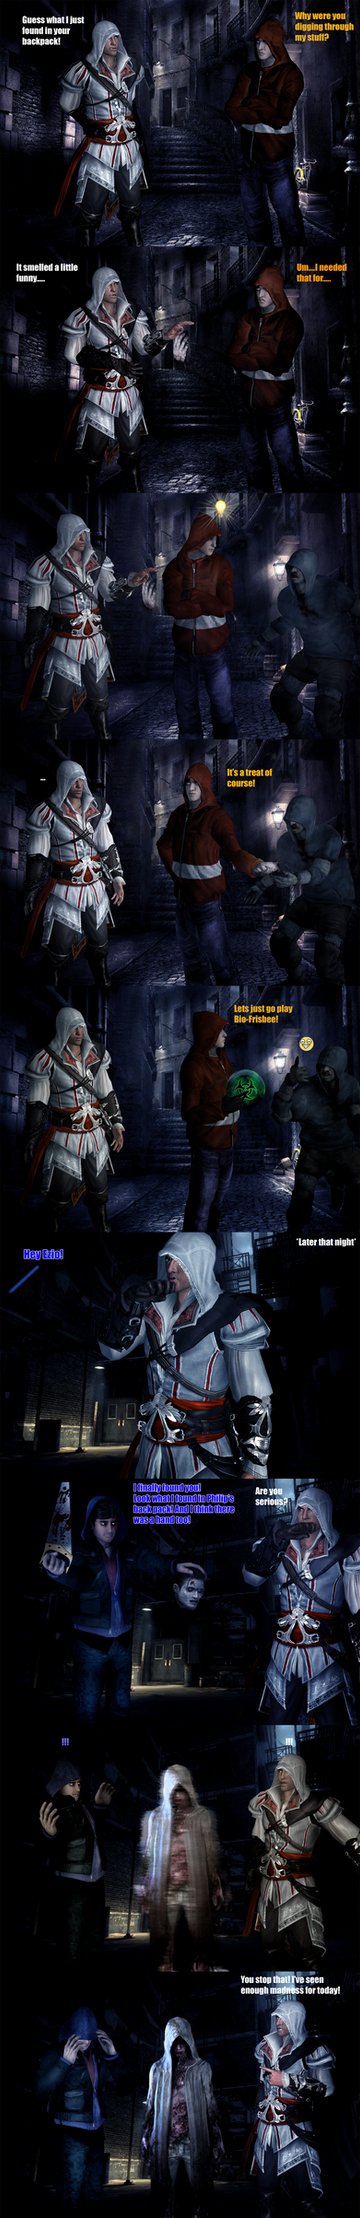 Hoods Crossover - Daily Madness! by DeathsFugitive